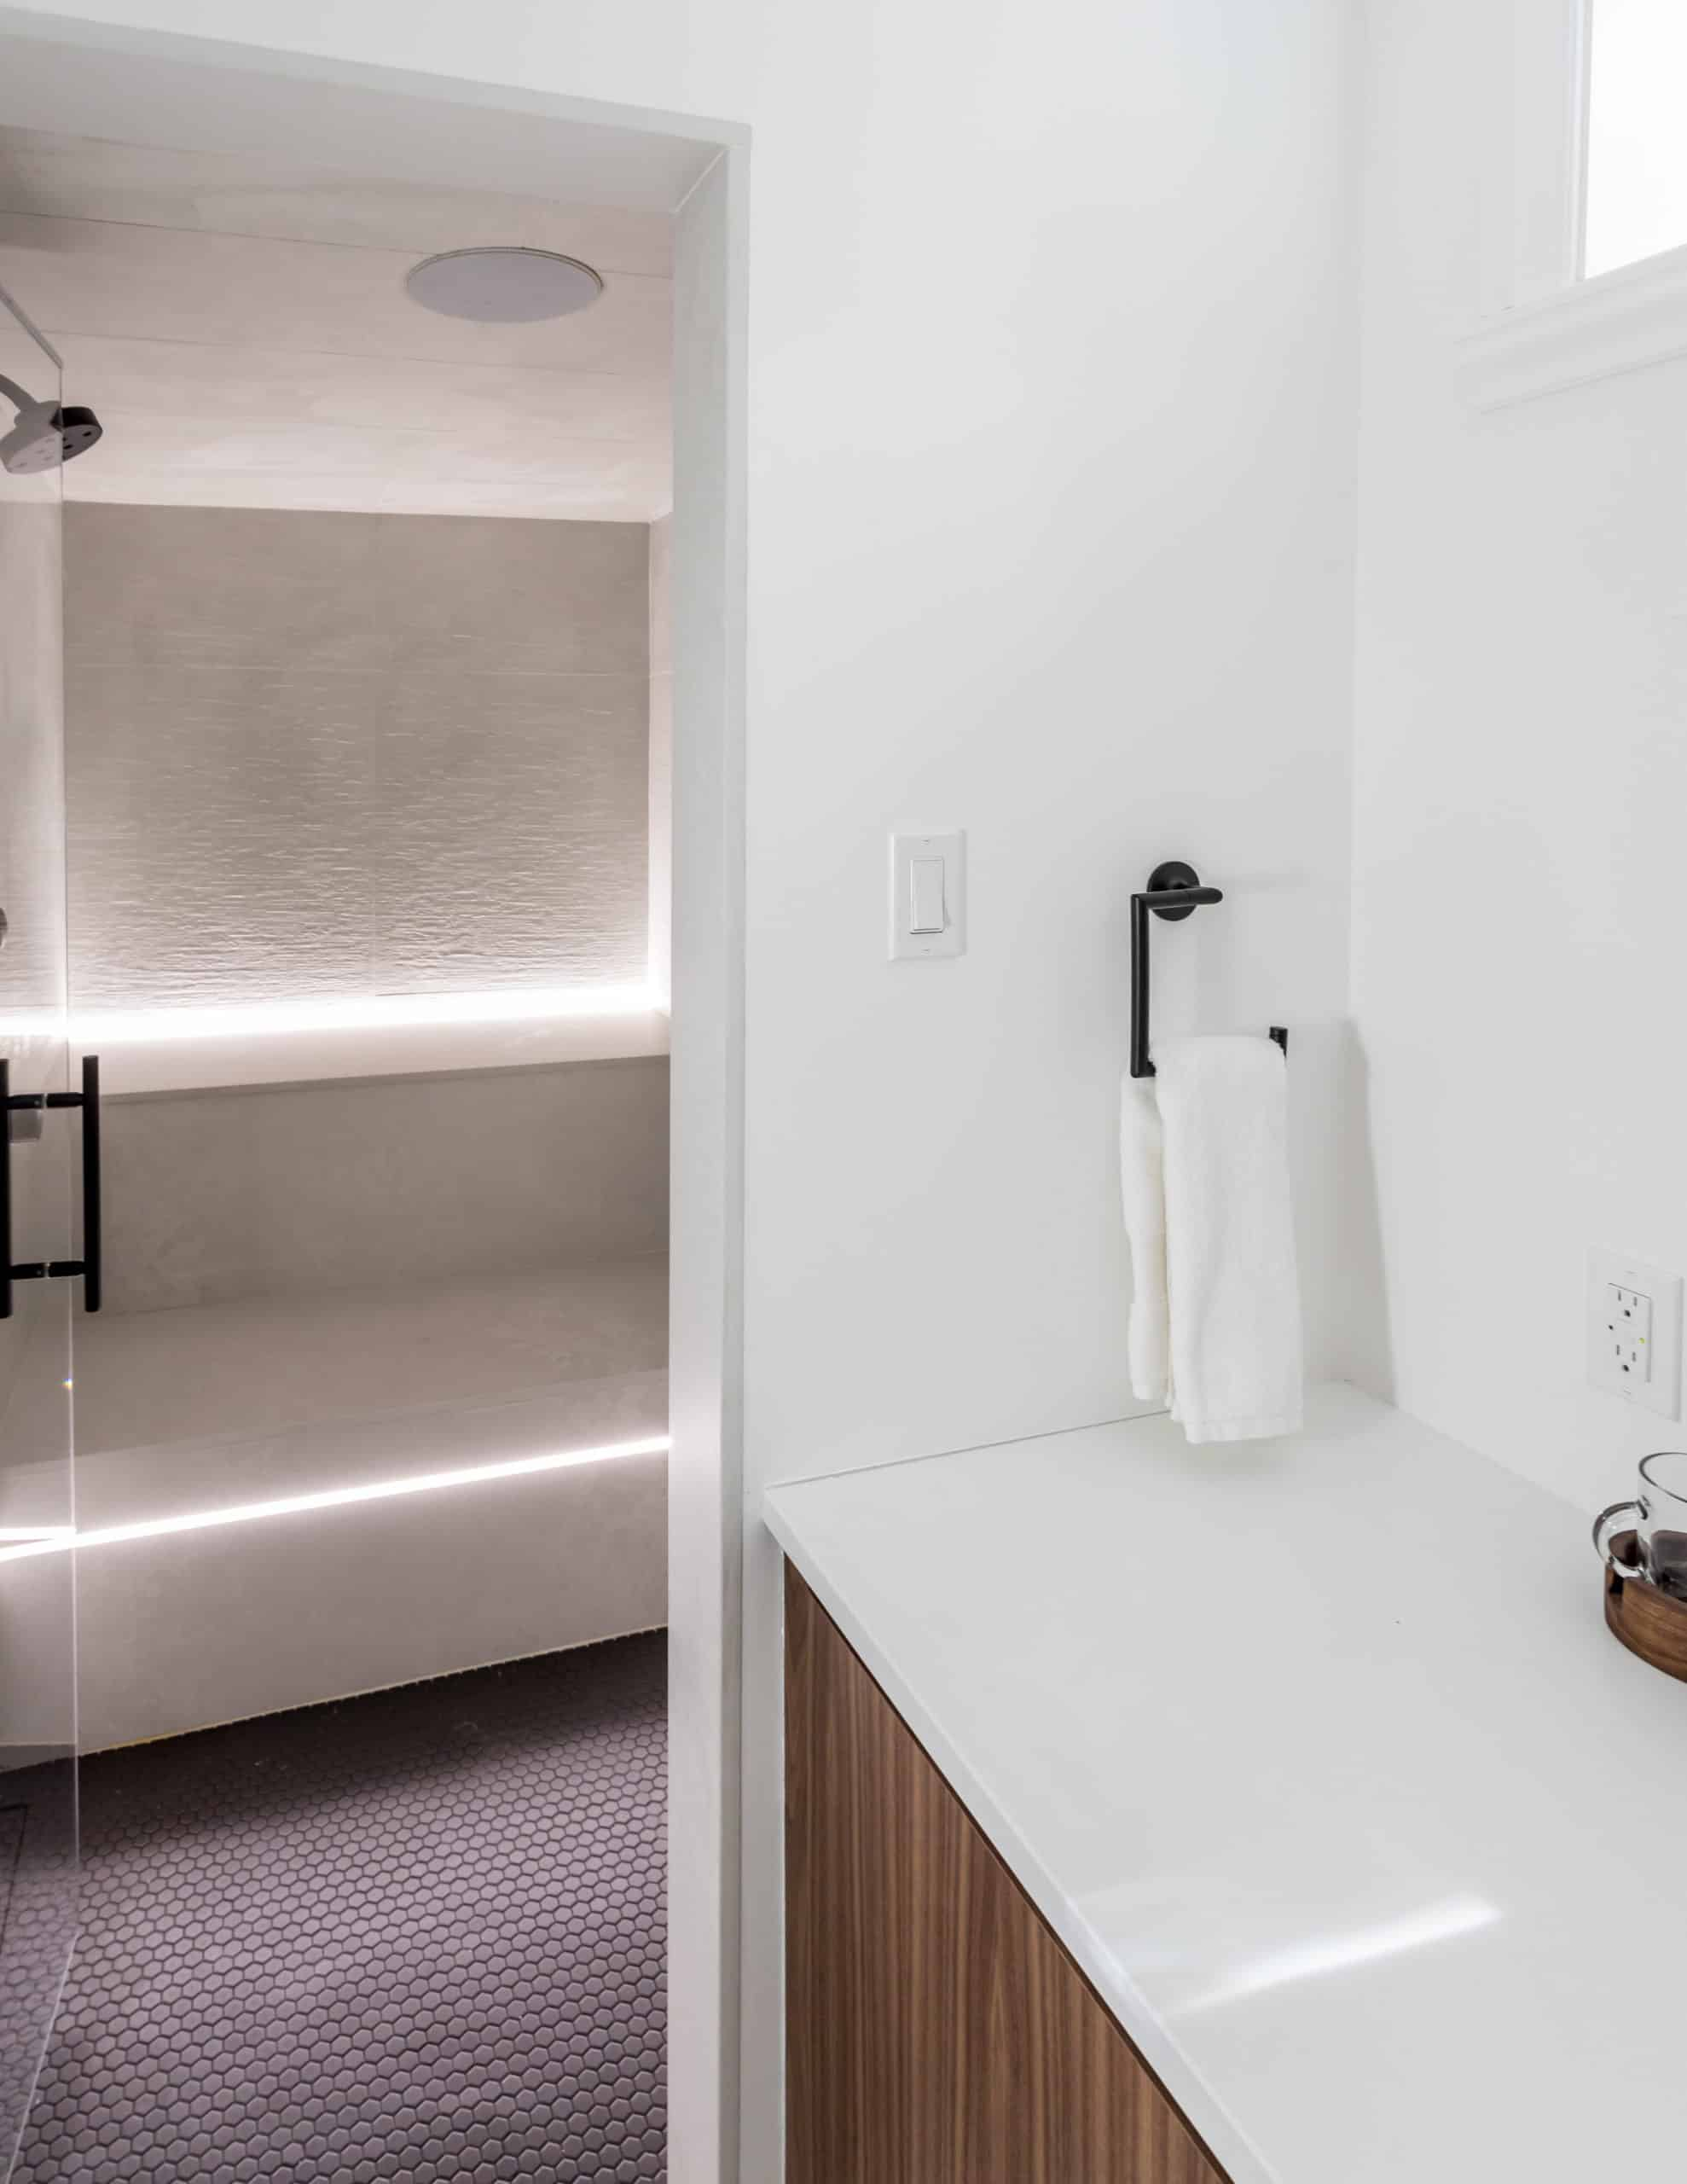 Bright white bathroom with a wooden vanity